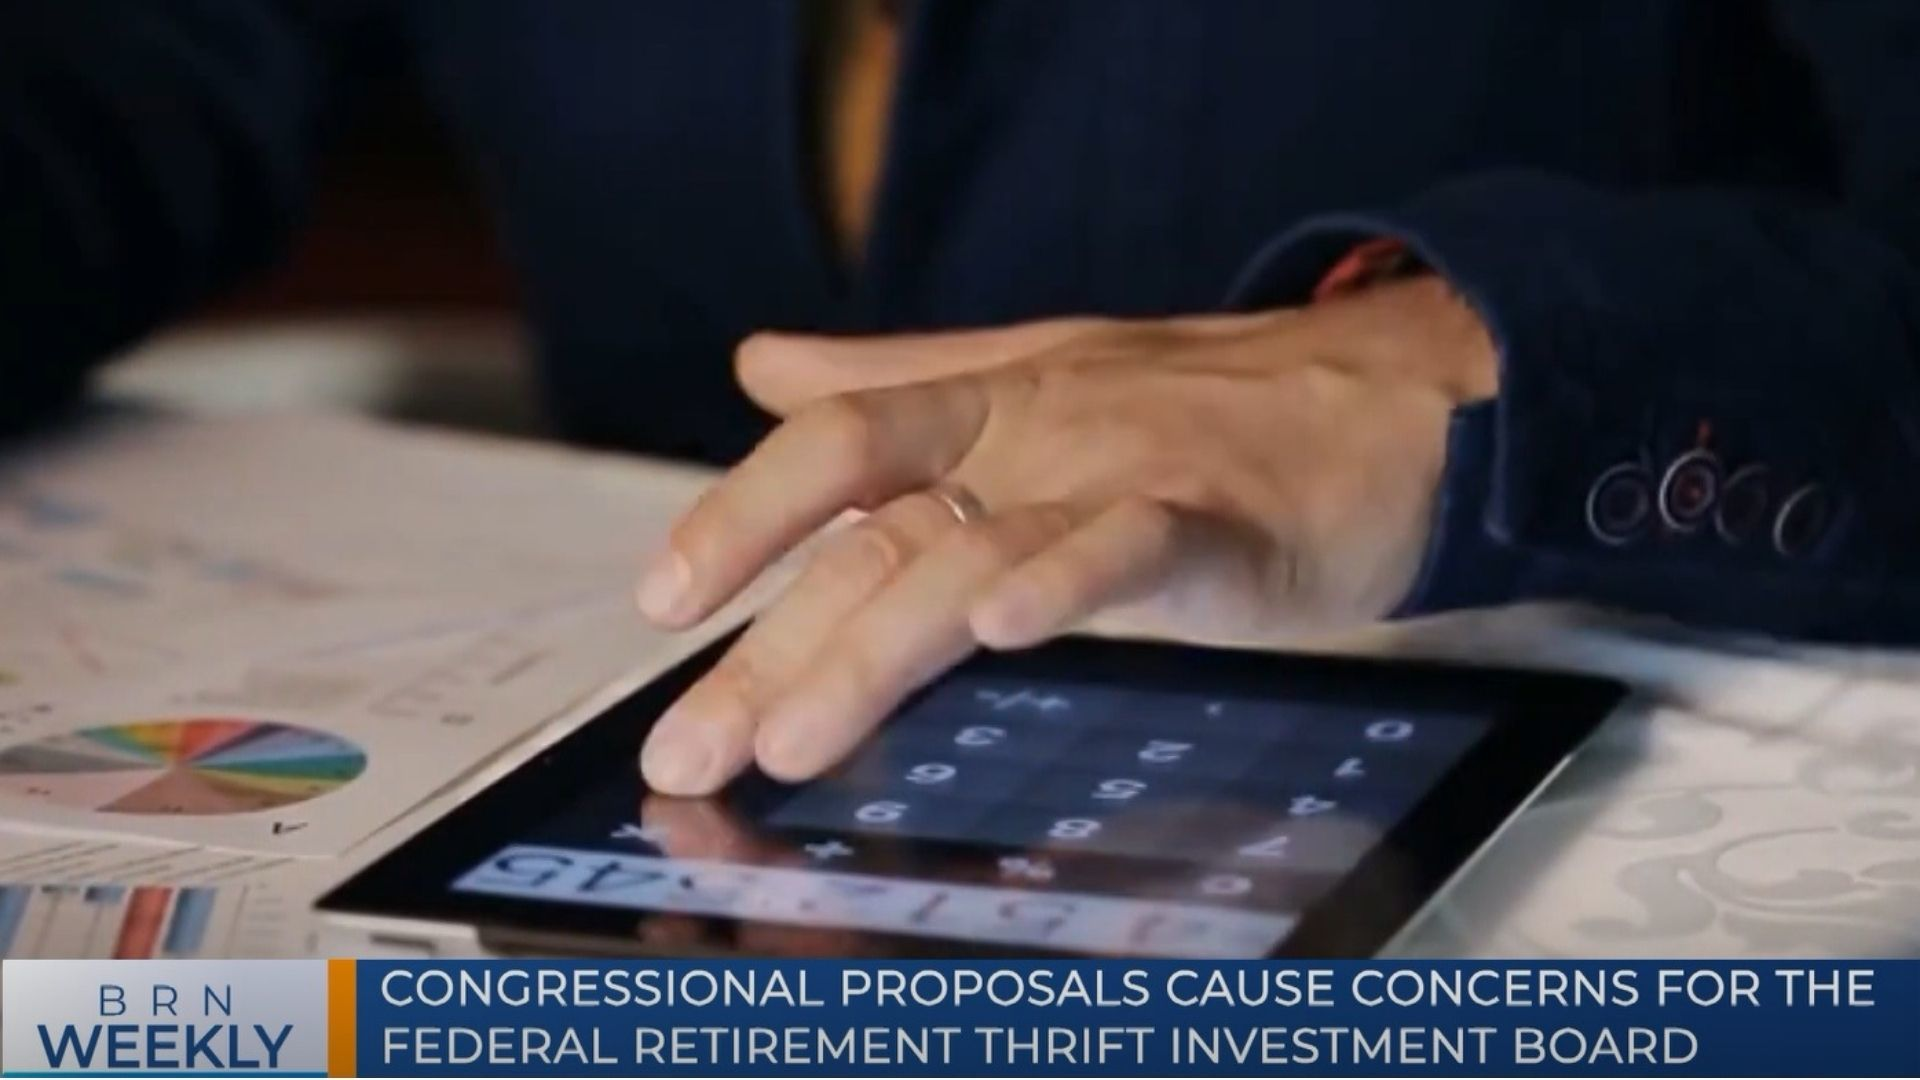 BRN Weekly   Congressional proposals cause concerns for Federal Retirement Thrift Investment Board